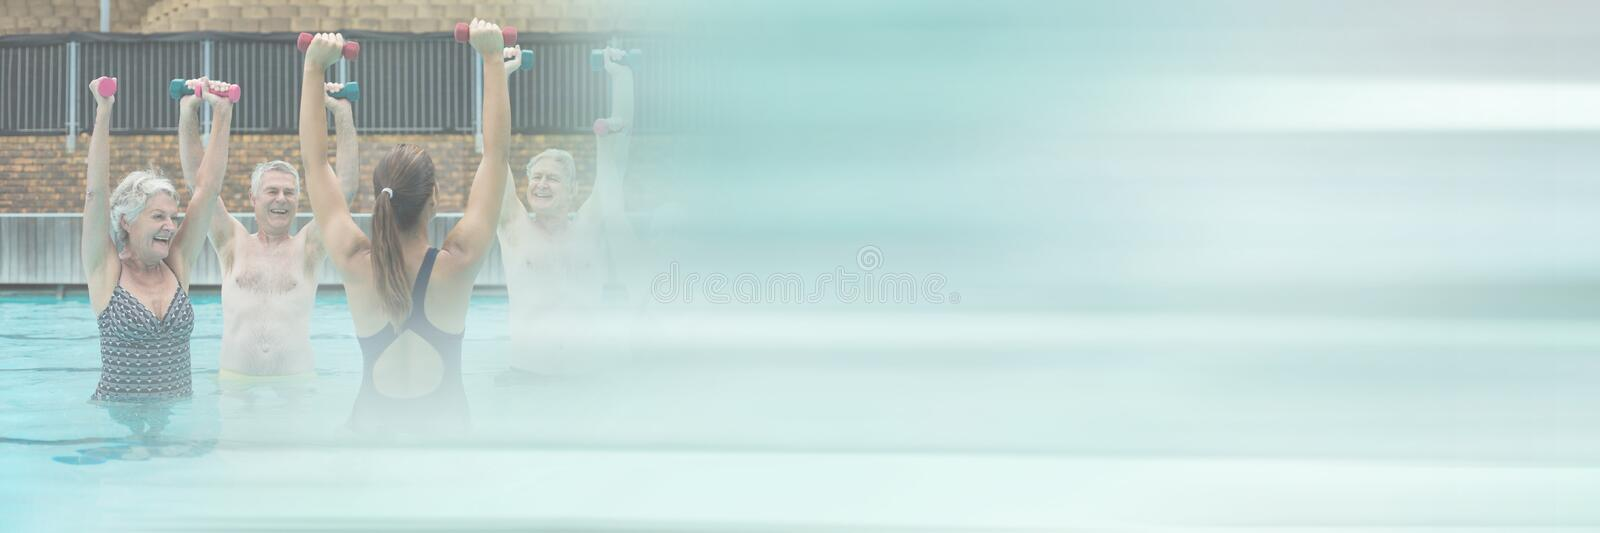 Old people exercising in Swimming pool with transition royalty free stock photography